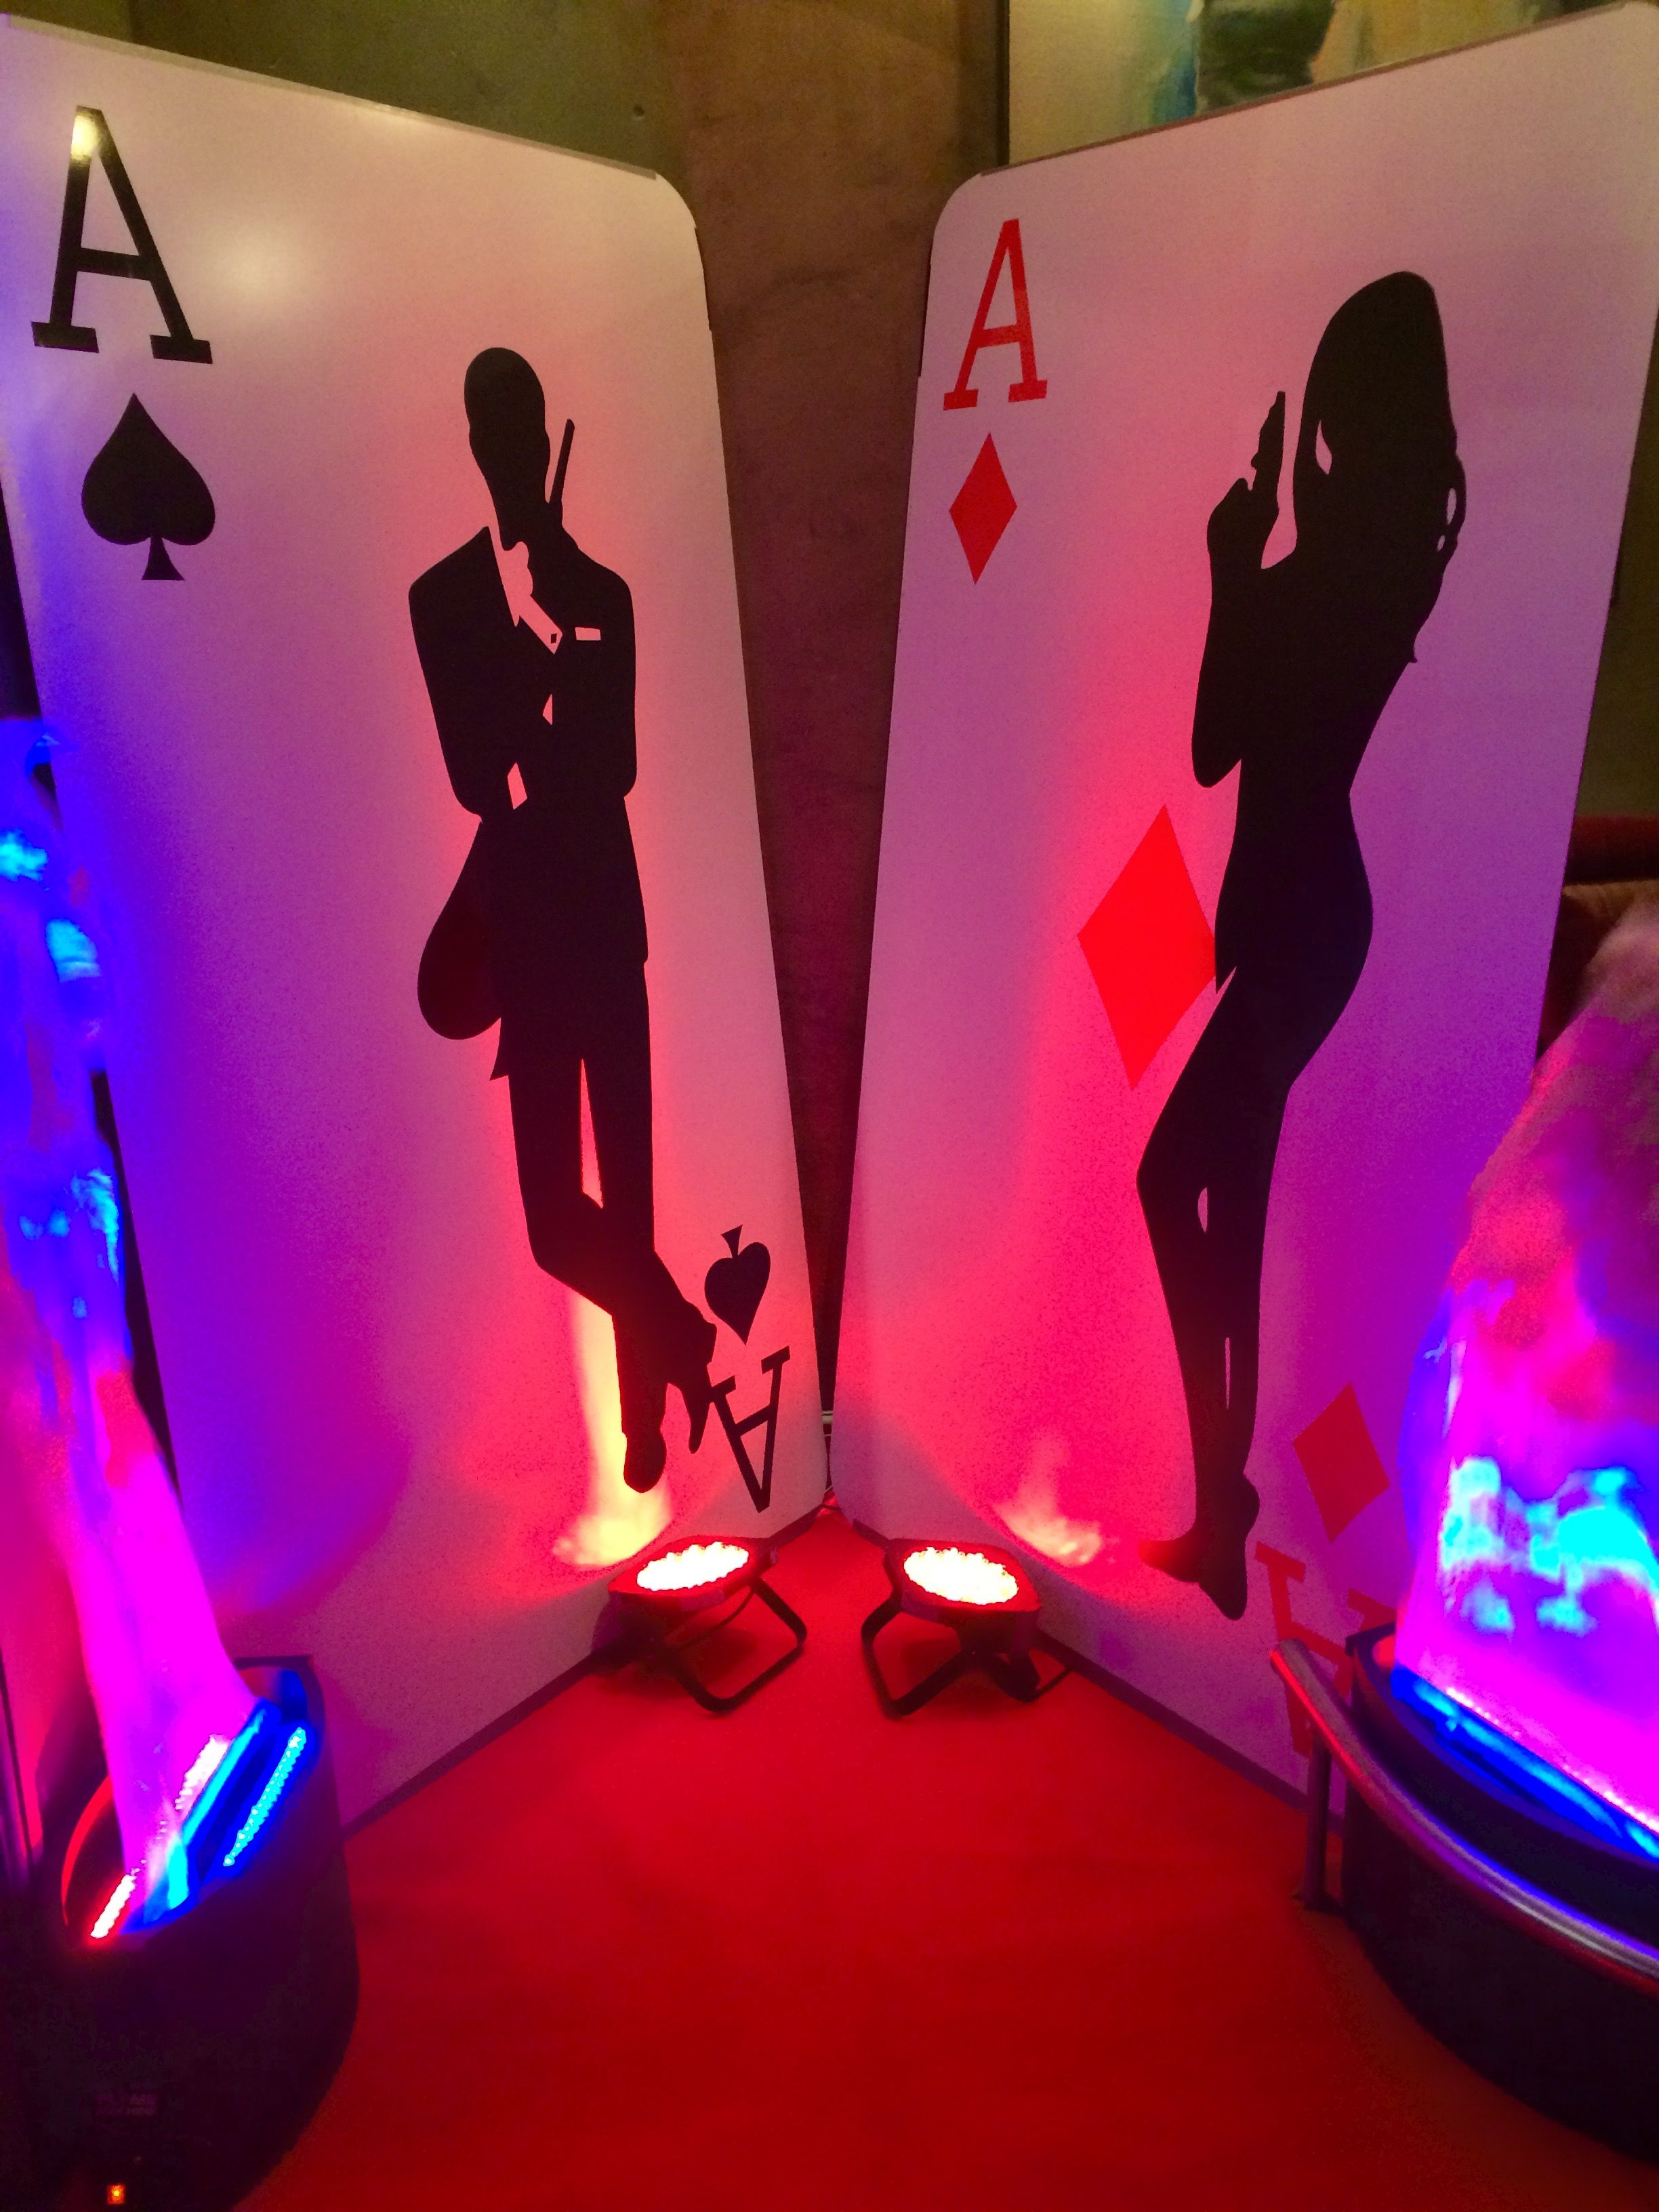 Giant playing card hire james bond prop party event prop